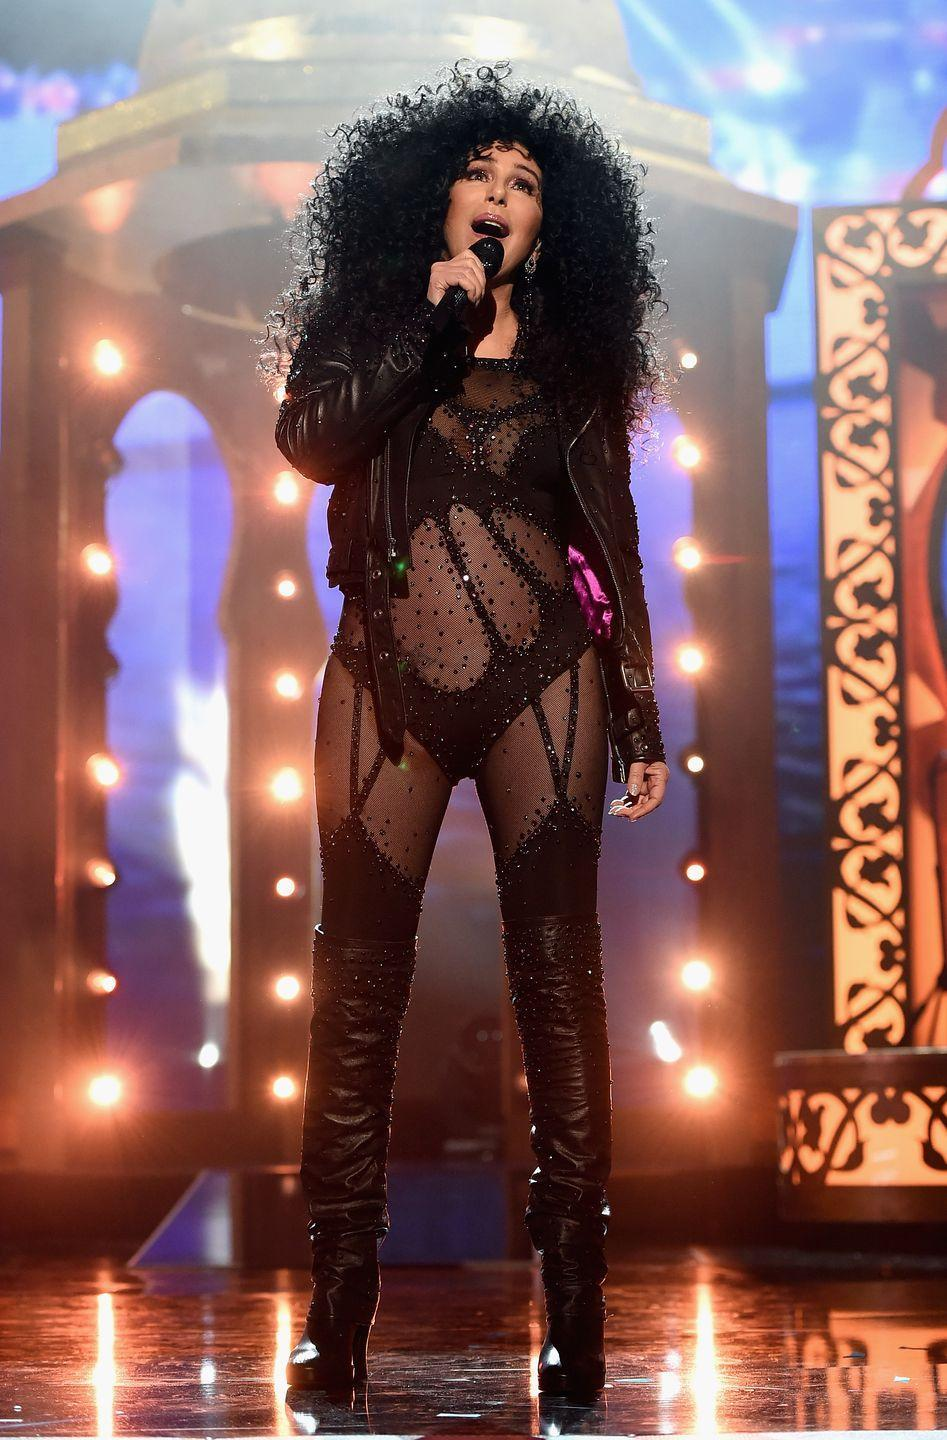 <p>Wearing her iconic cutout bodysuit and leather jacket once again to perform at the Billboard Music Awards in 2017 (yes at 71 years old). </p>